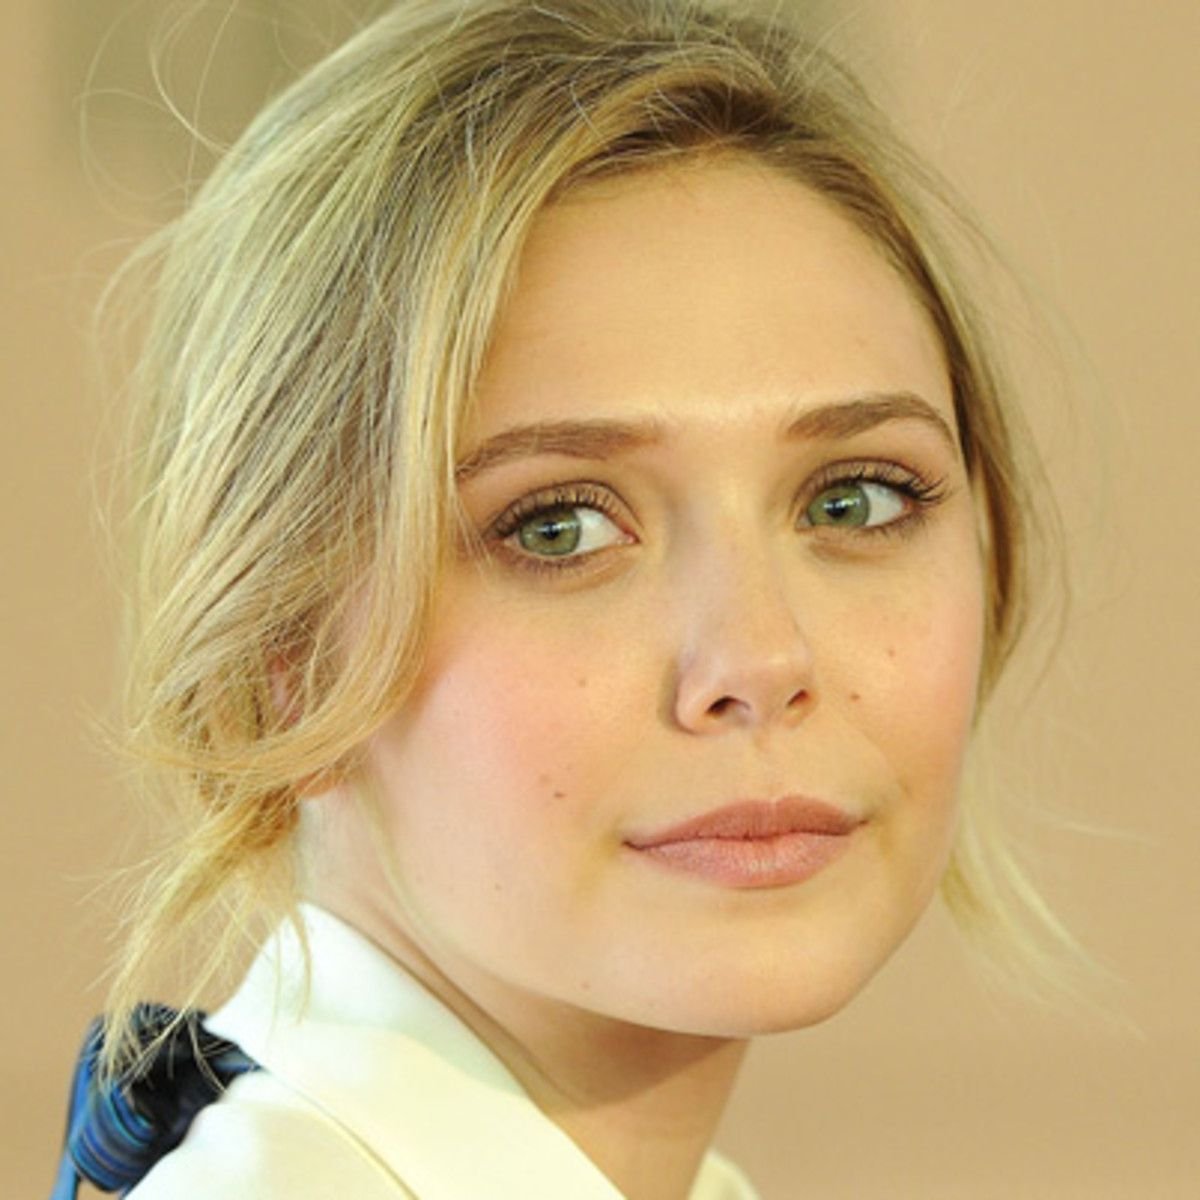 Elizabeth Olsen Biography, Biodata, Wiki, Age, Height, Weight, Affairs & More